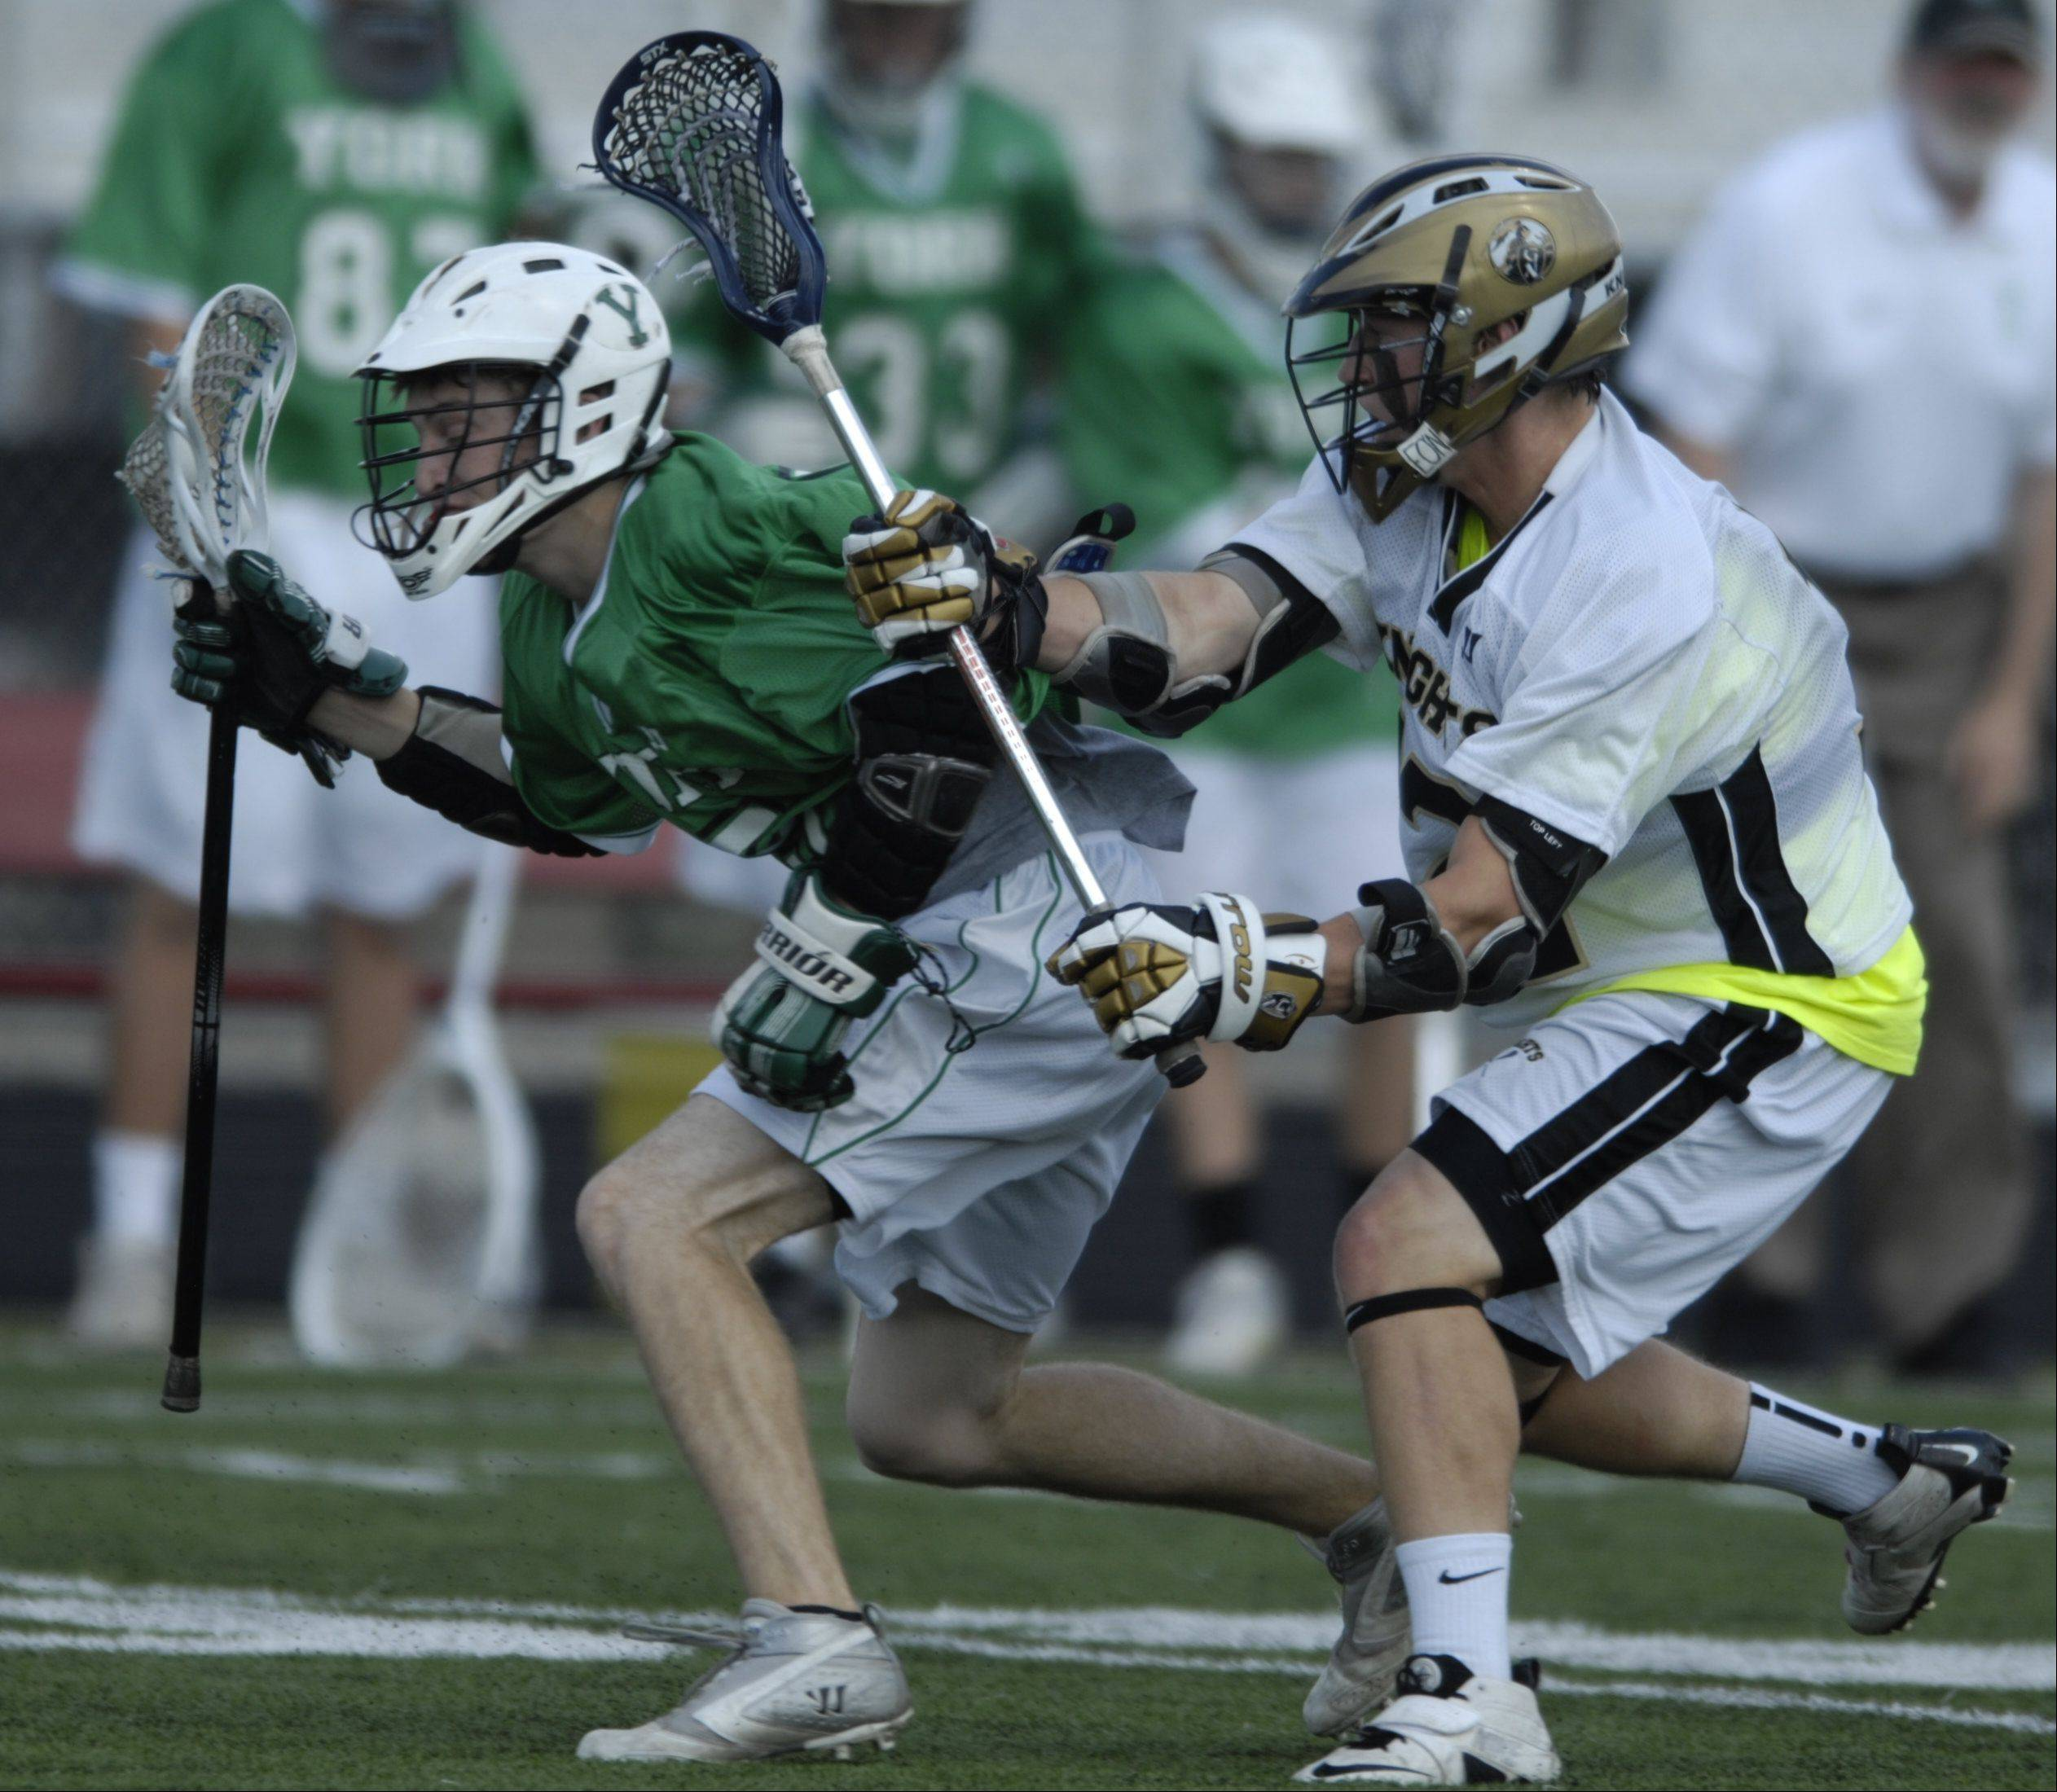 Images from the Lacrosse Cup championship game between Grayslake North High School and York High School on Saturday, June 2nd, at Palatine High School